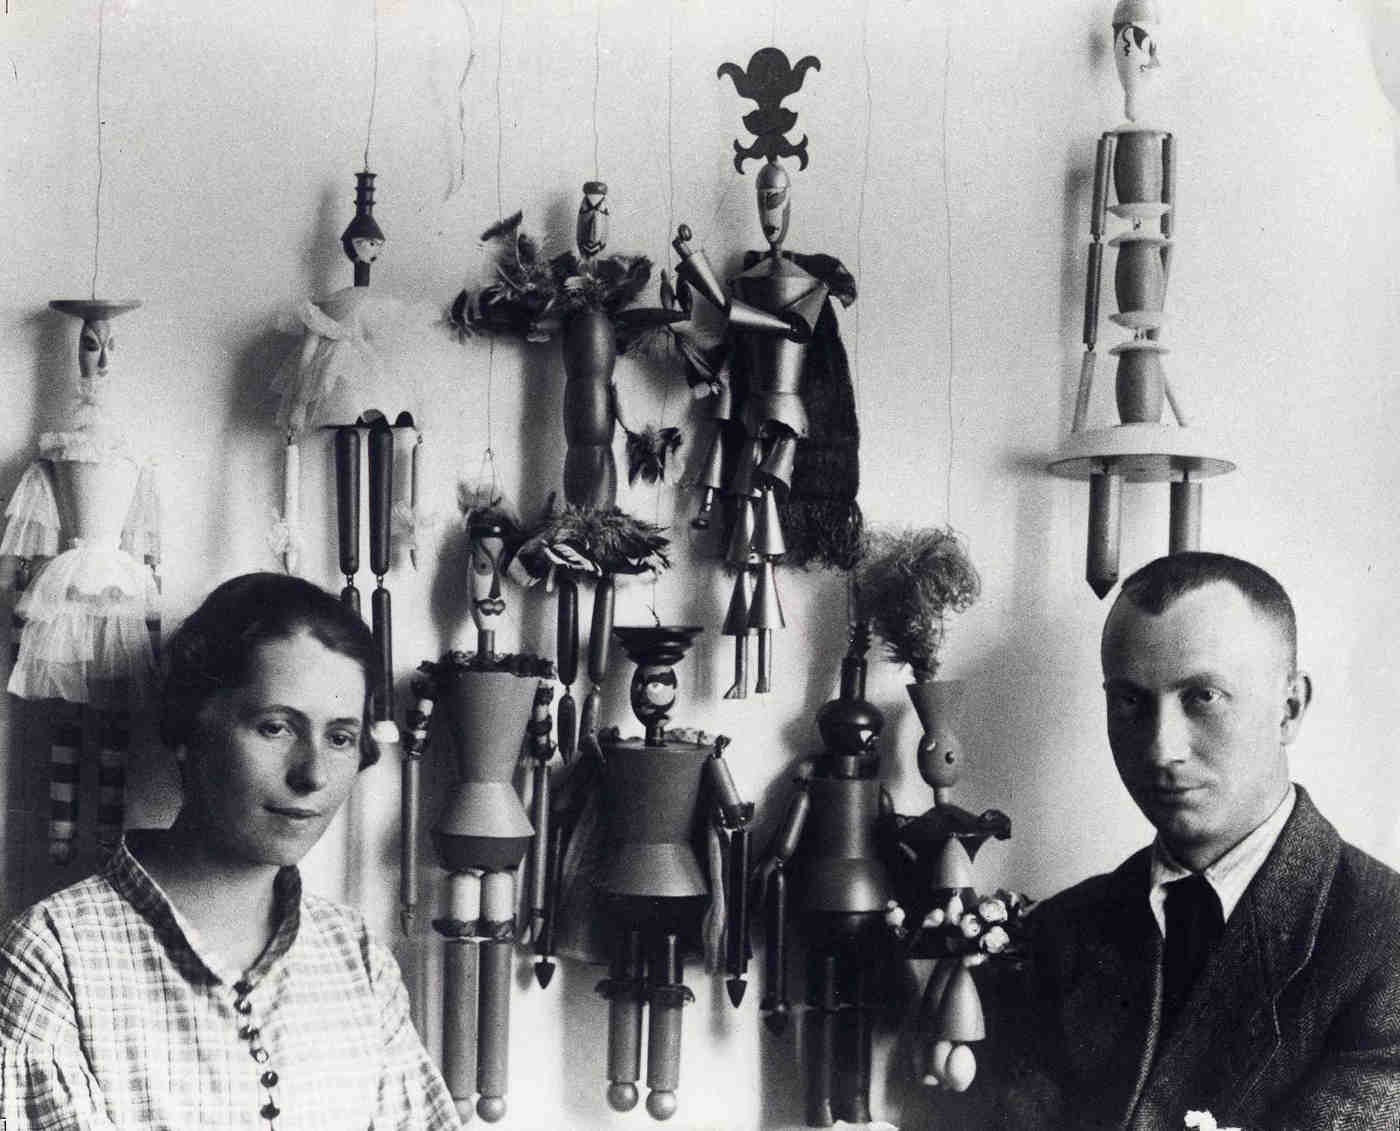 Sophie Taeuber and Hans Arp in front of the marionettes for the puppet show »King Stag«, Zurich 1918 | Photo: Ernst Linck – Archiv Stiftung Arp e. V., Berlin/Rolandswerth